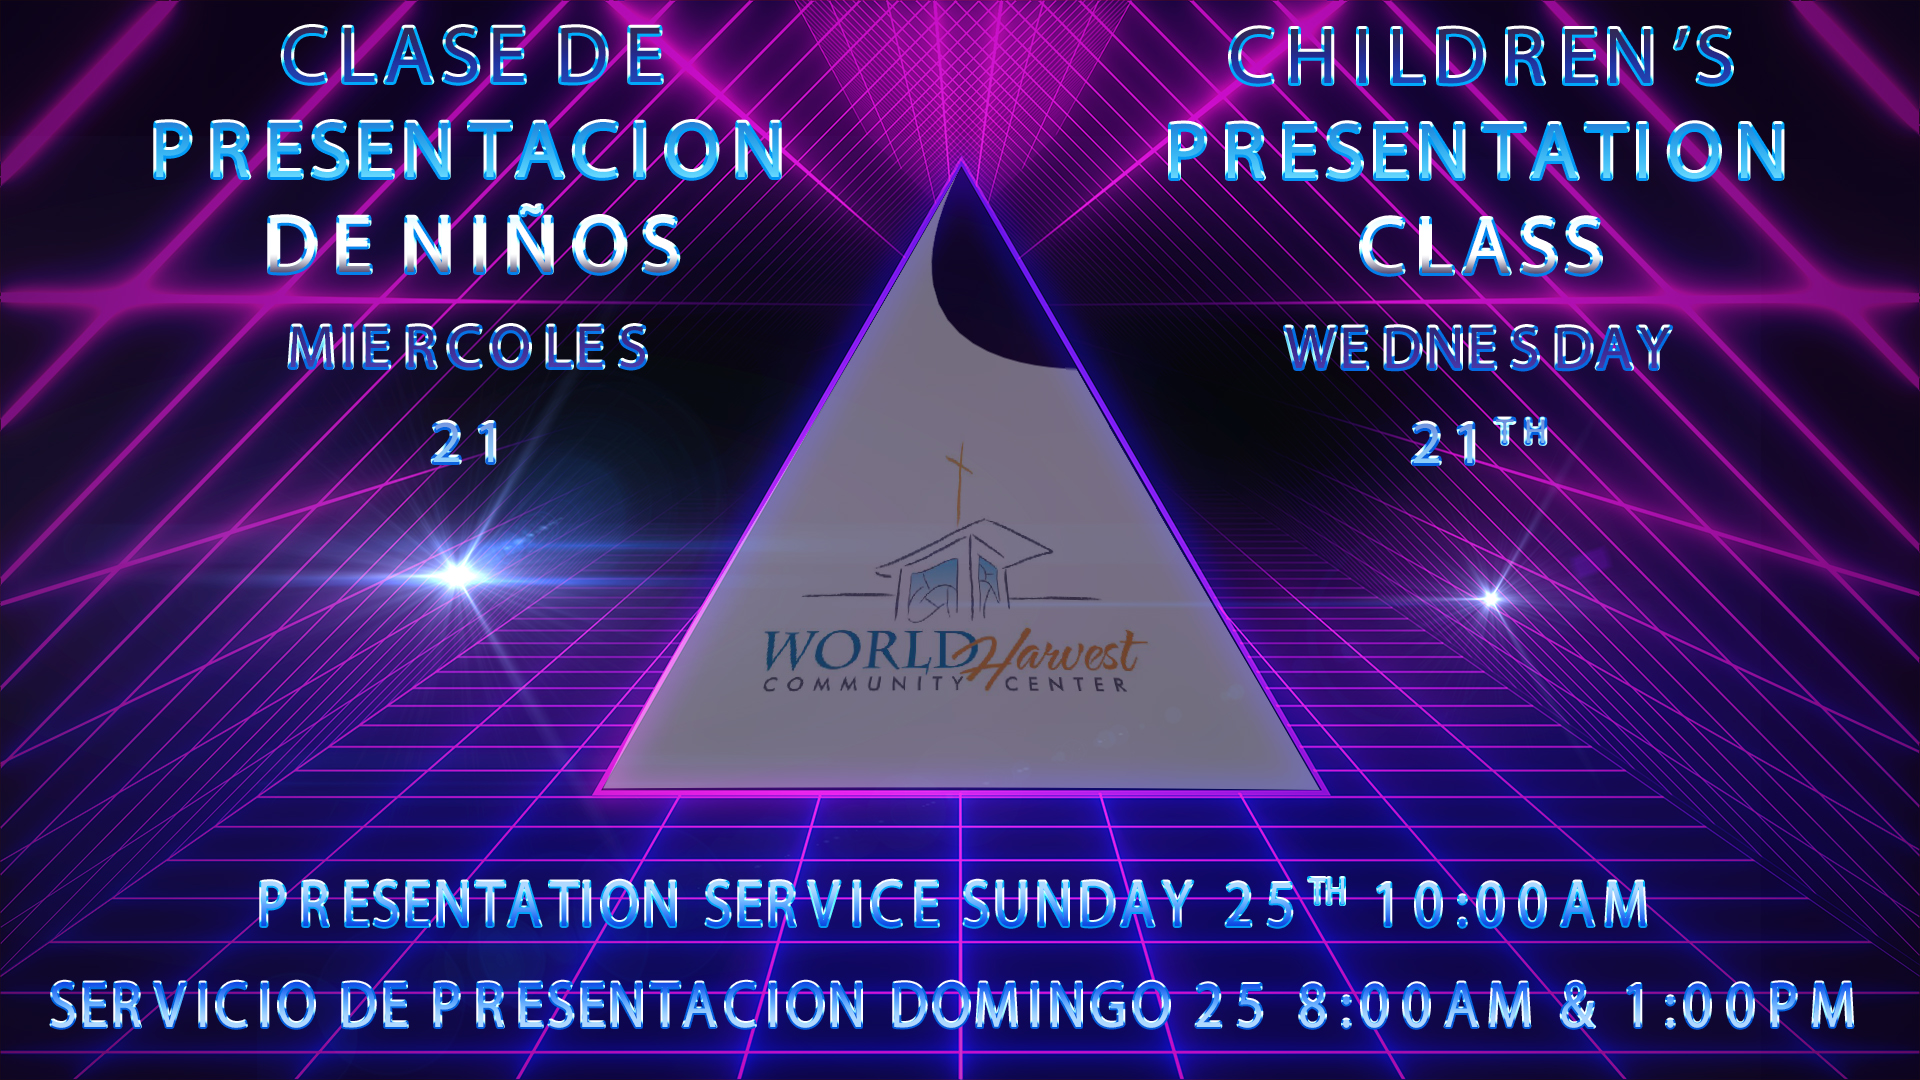 Children's Presentation Class Wed. March 21st.